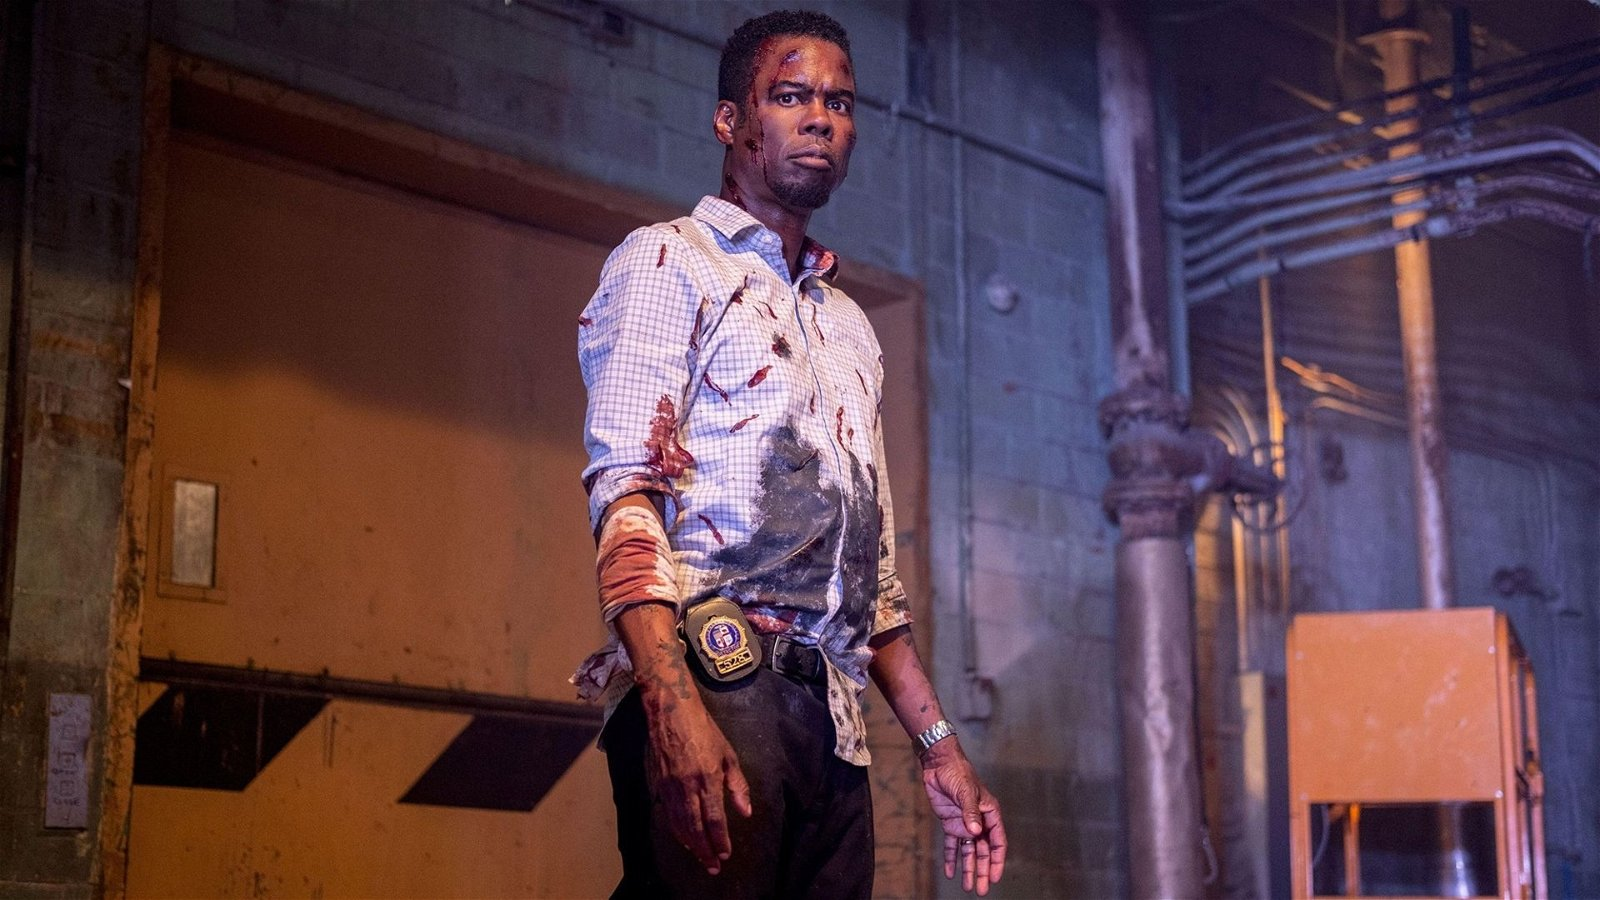 Spiral Featuring Chris Rock and Samuel L. Jackson Releases Trailer 1